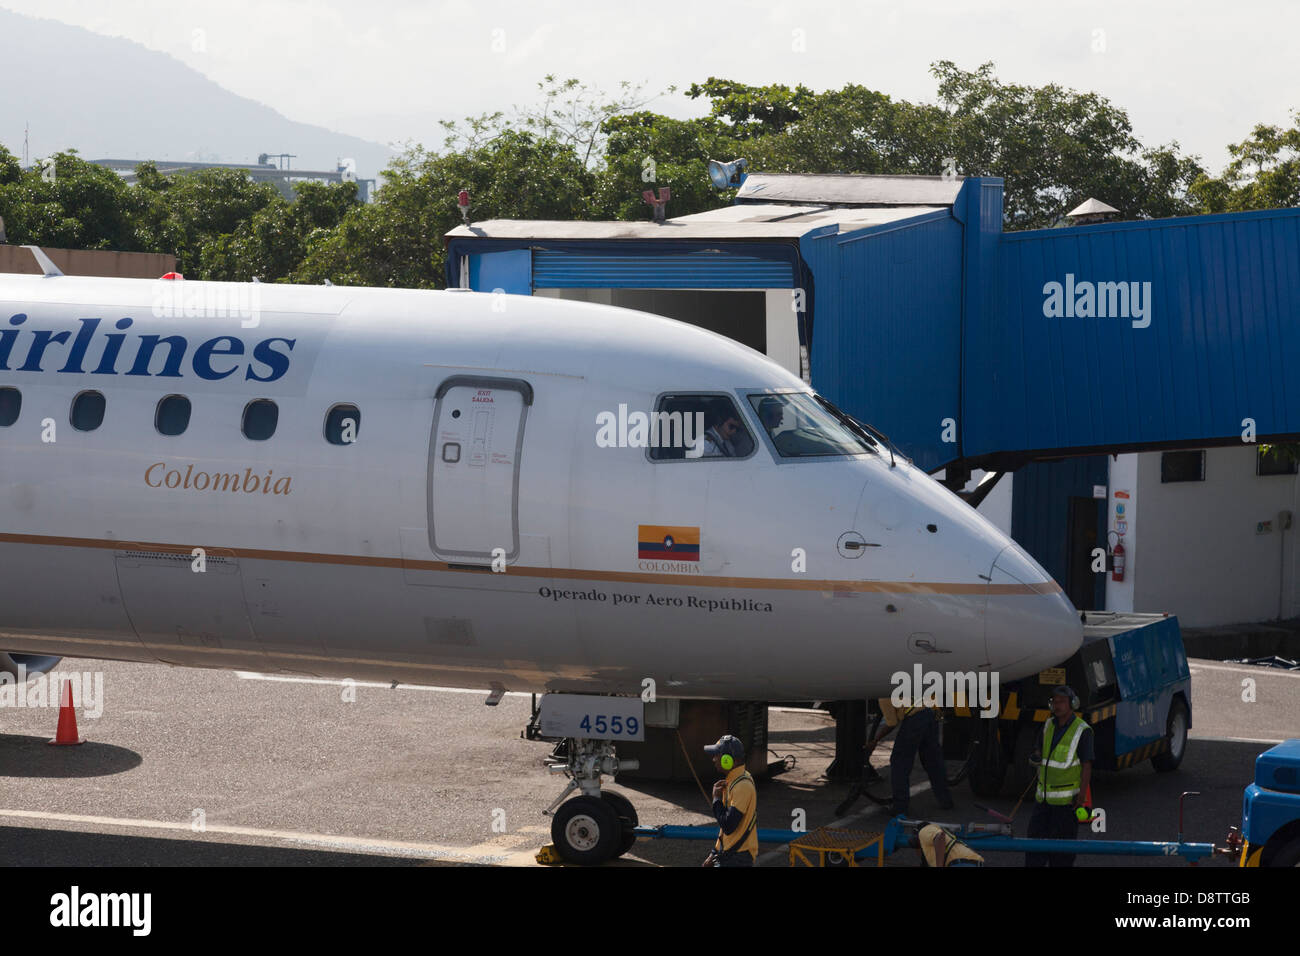 Copa Airlines Plane Taxiing at Santa Marta Airport, Colombia - Stock Image